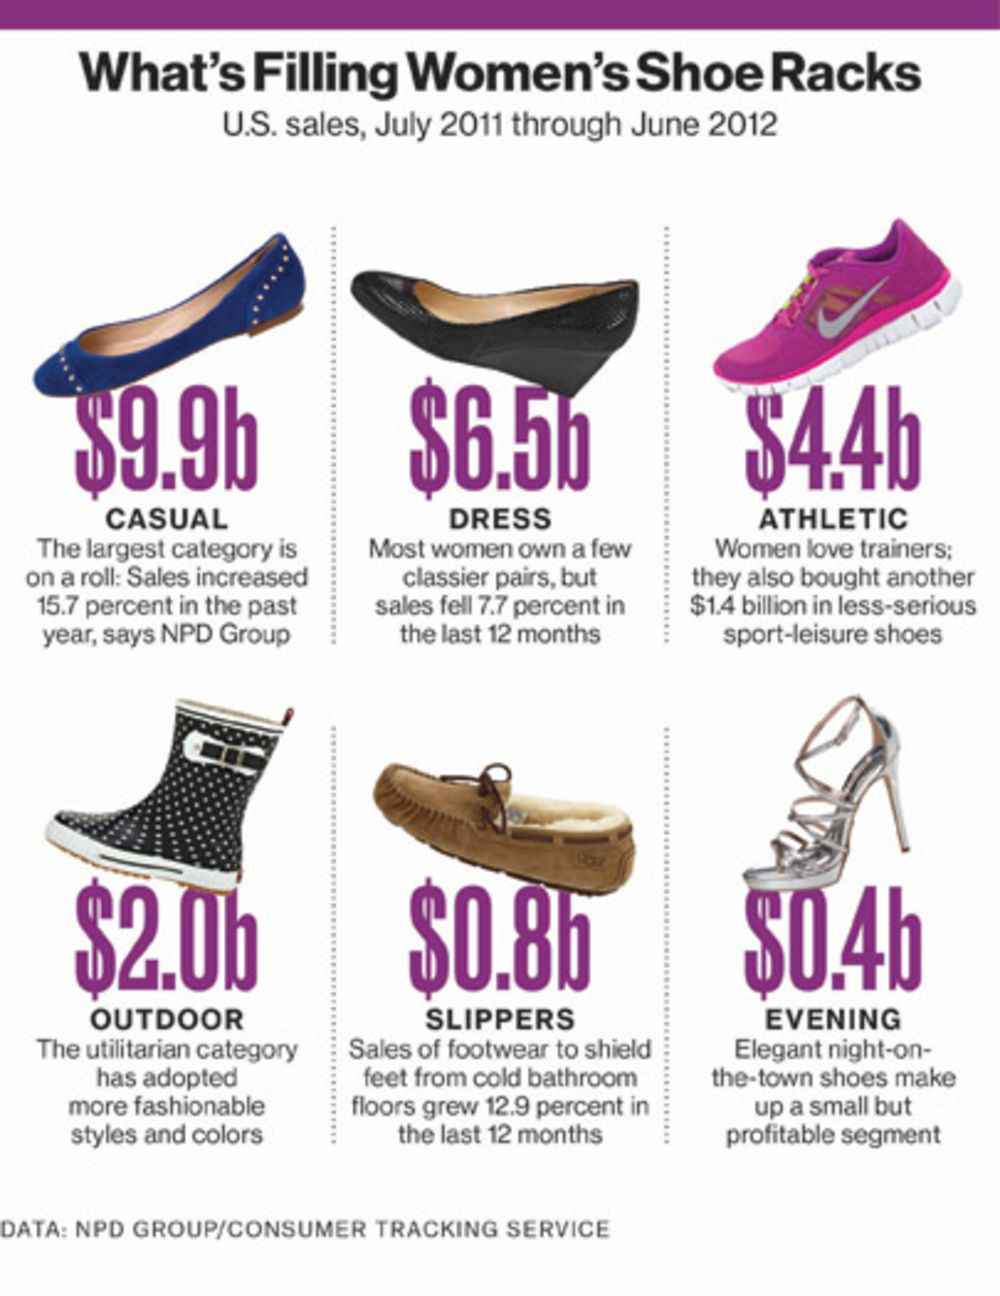 e504904cfe9a Shoes Rule When It Comes to Store Profits - Bloomberg